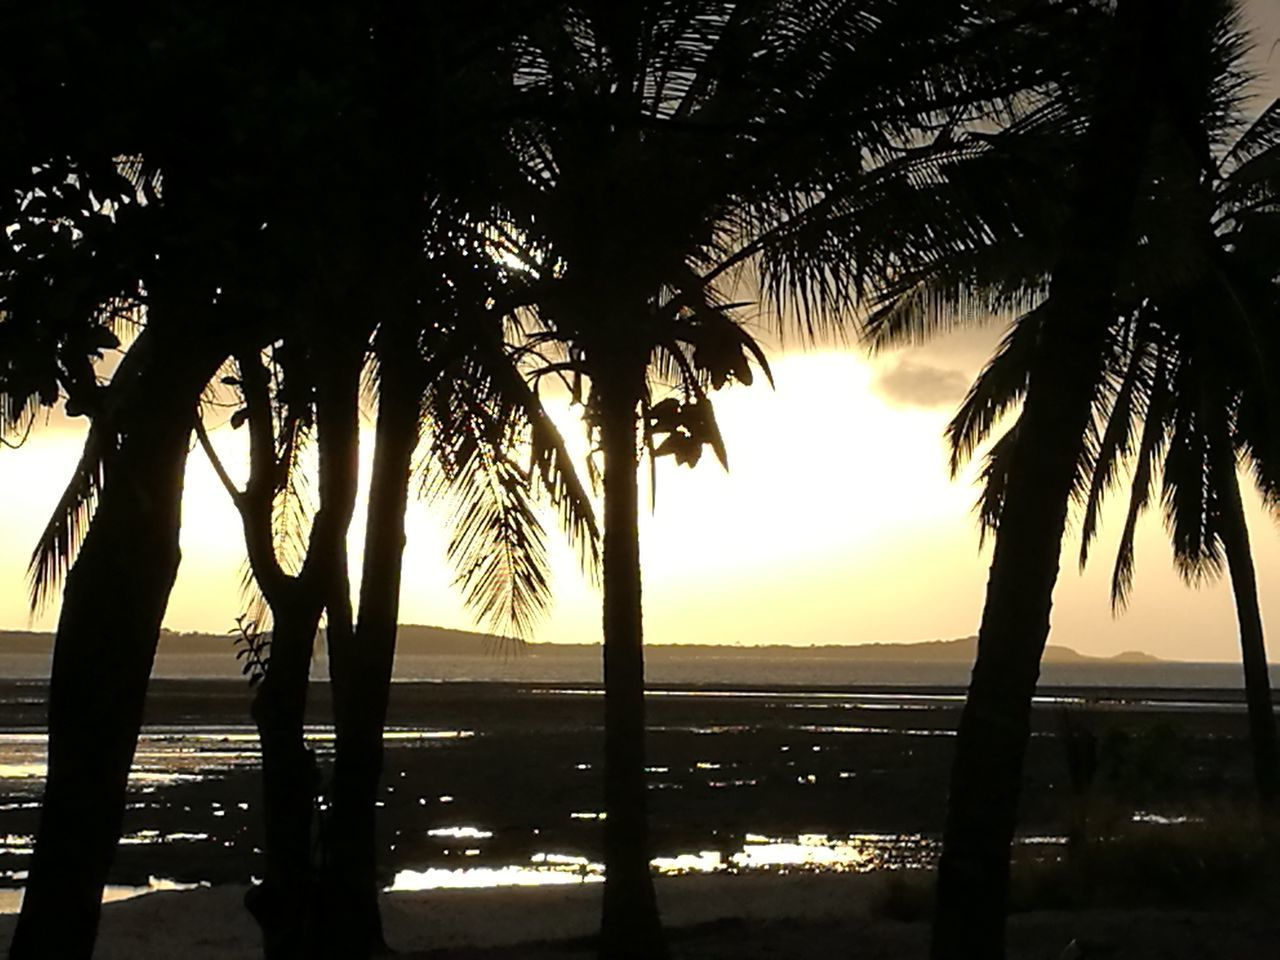 Sunset Sea Tree Nature Sunlight Sky Travel Water Vacations Sun Scenics Reflection Tourism Silhouette Outdoors Landscape No People Beach Backgrounds Travel Destinations